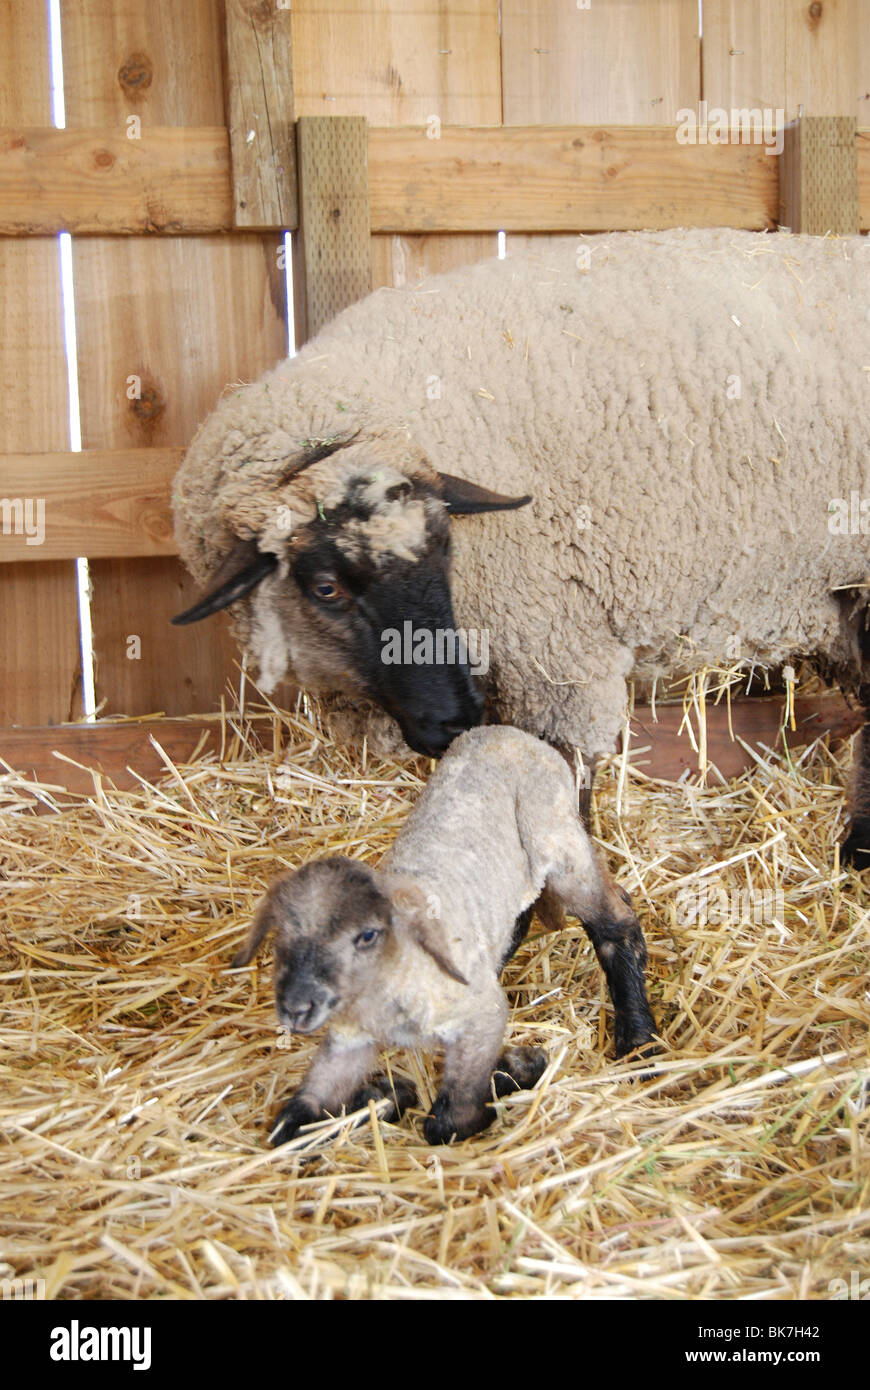 mother sheep (ewe) helping newborn lamb to its feet for first time - Stock Image